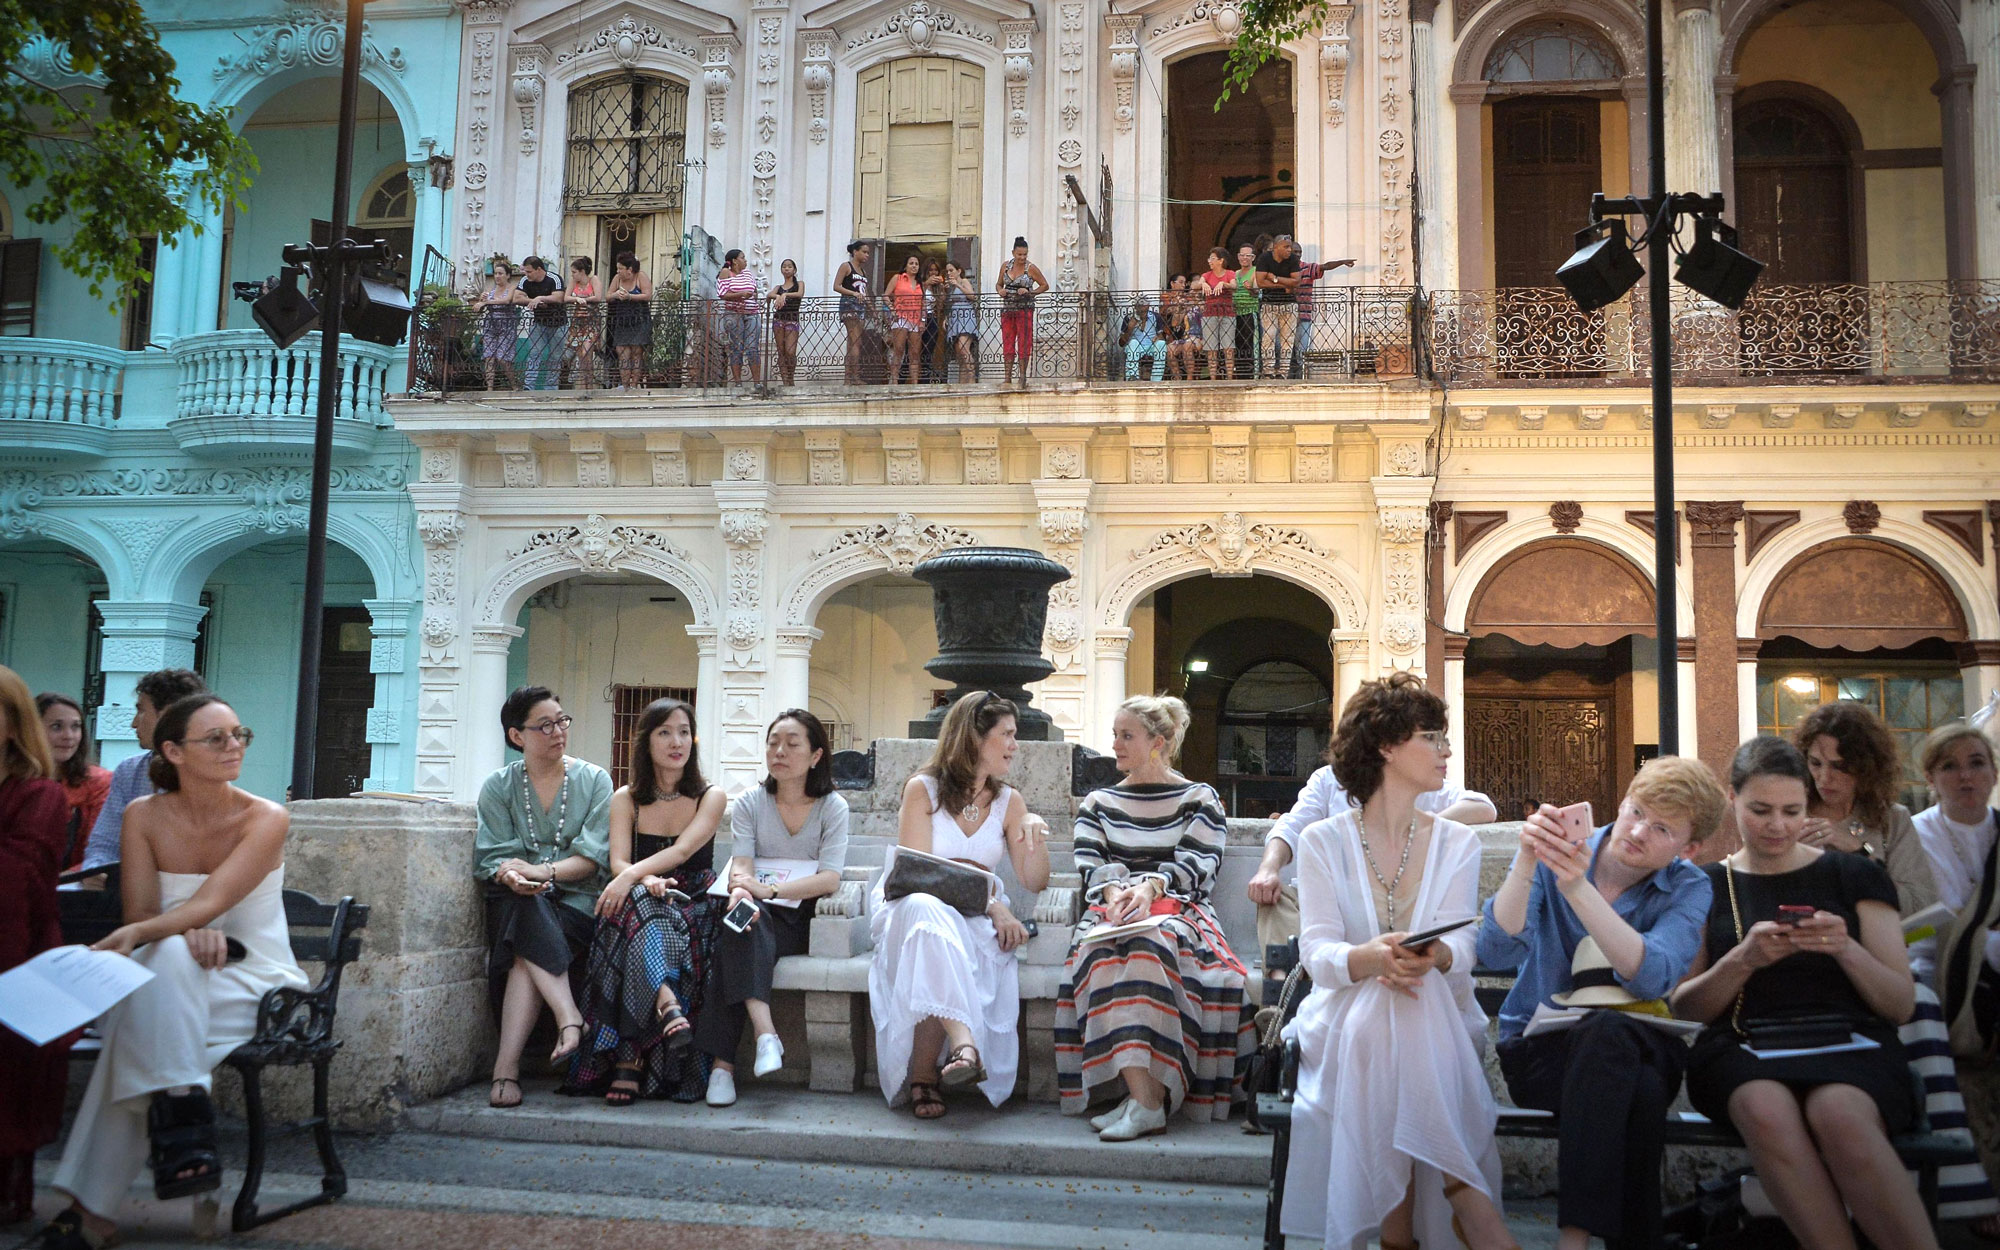 Chanel Hosts First Fashion Show in Cuba